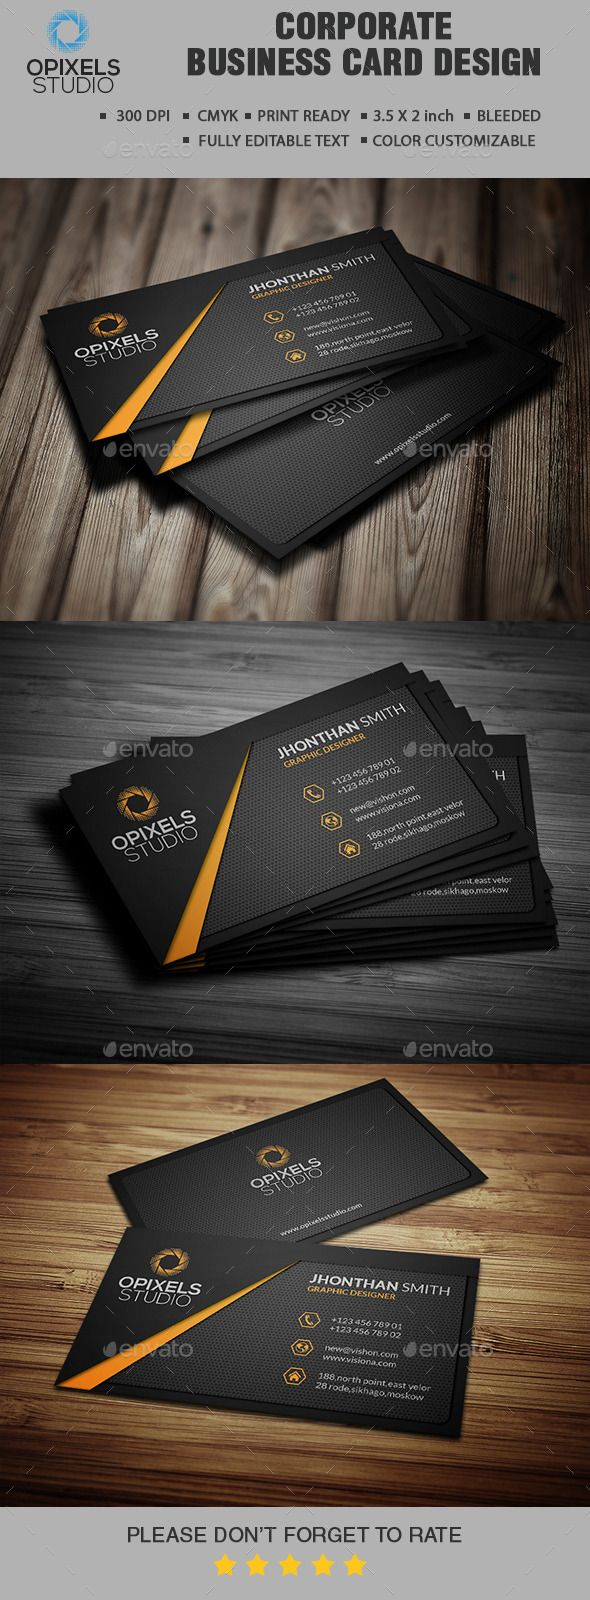 Corporate Business Card Design Tempalte Download: http://graphicriver.net/item/corporate-business-card-/12942401?ref=ksioks